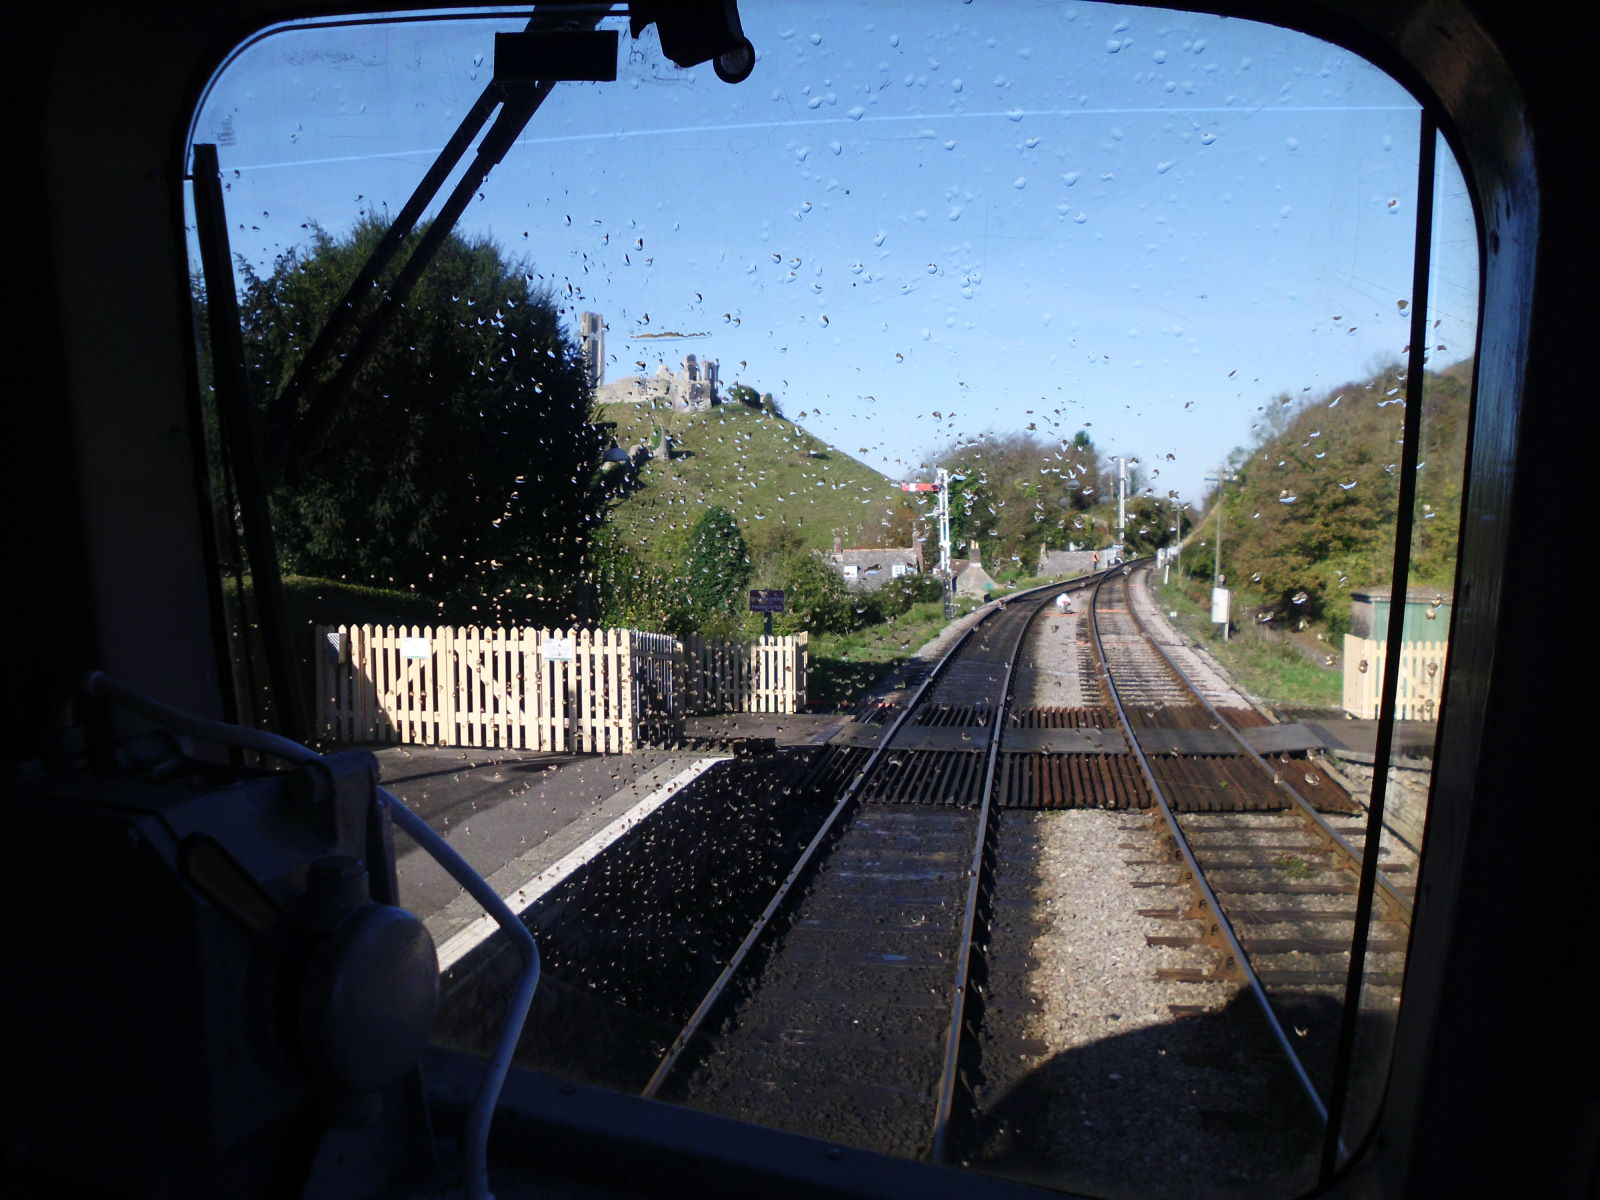 The view from the cab of D6515 at Corfe Castle station on the Swanage Railway